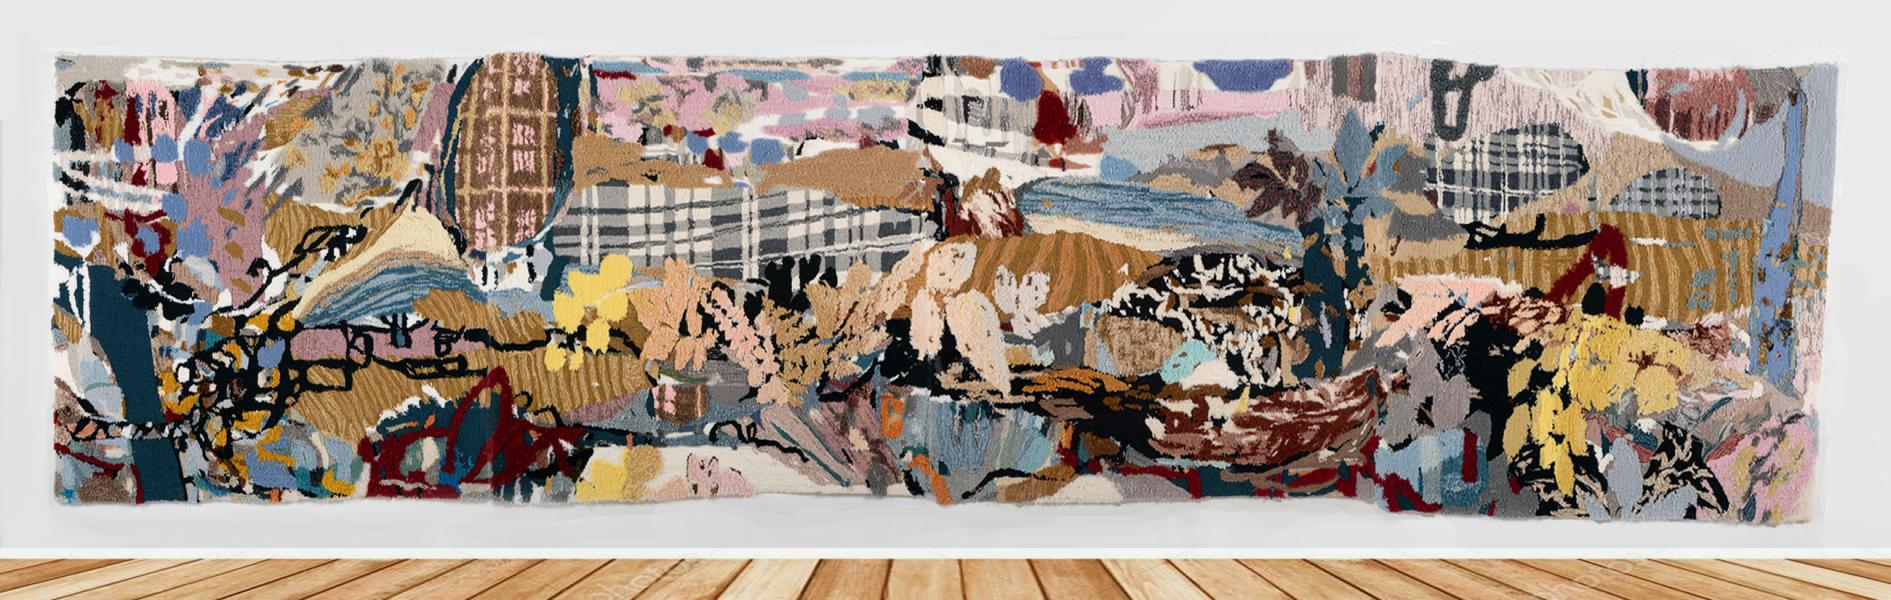 Textile art, rug, painting